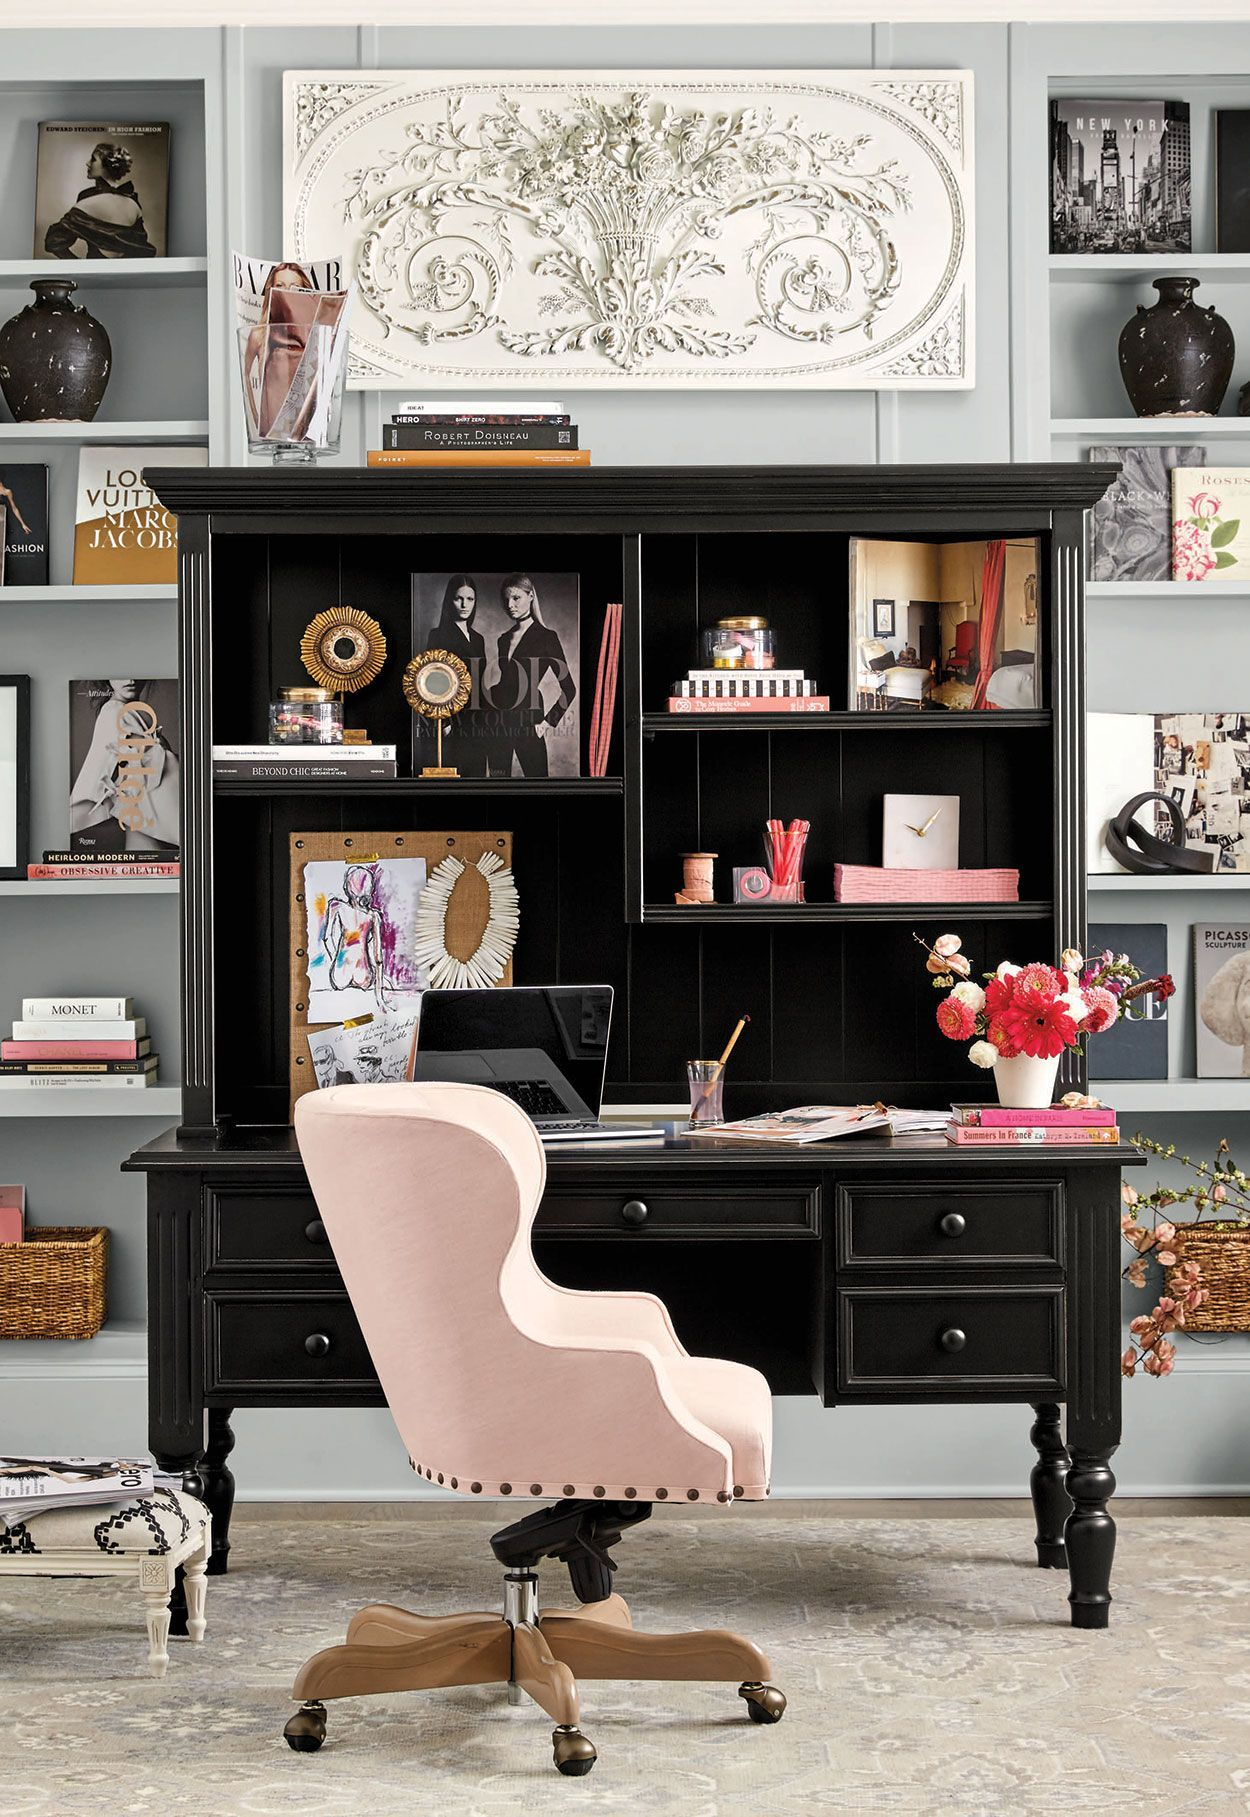 A Blush Pink Desk Chair And Accessories Add A Feminine Touch To A